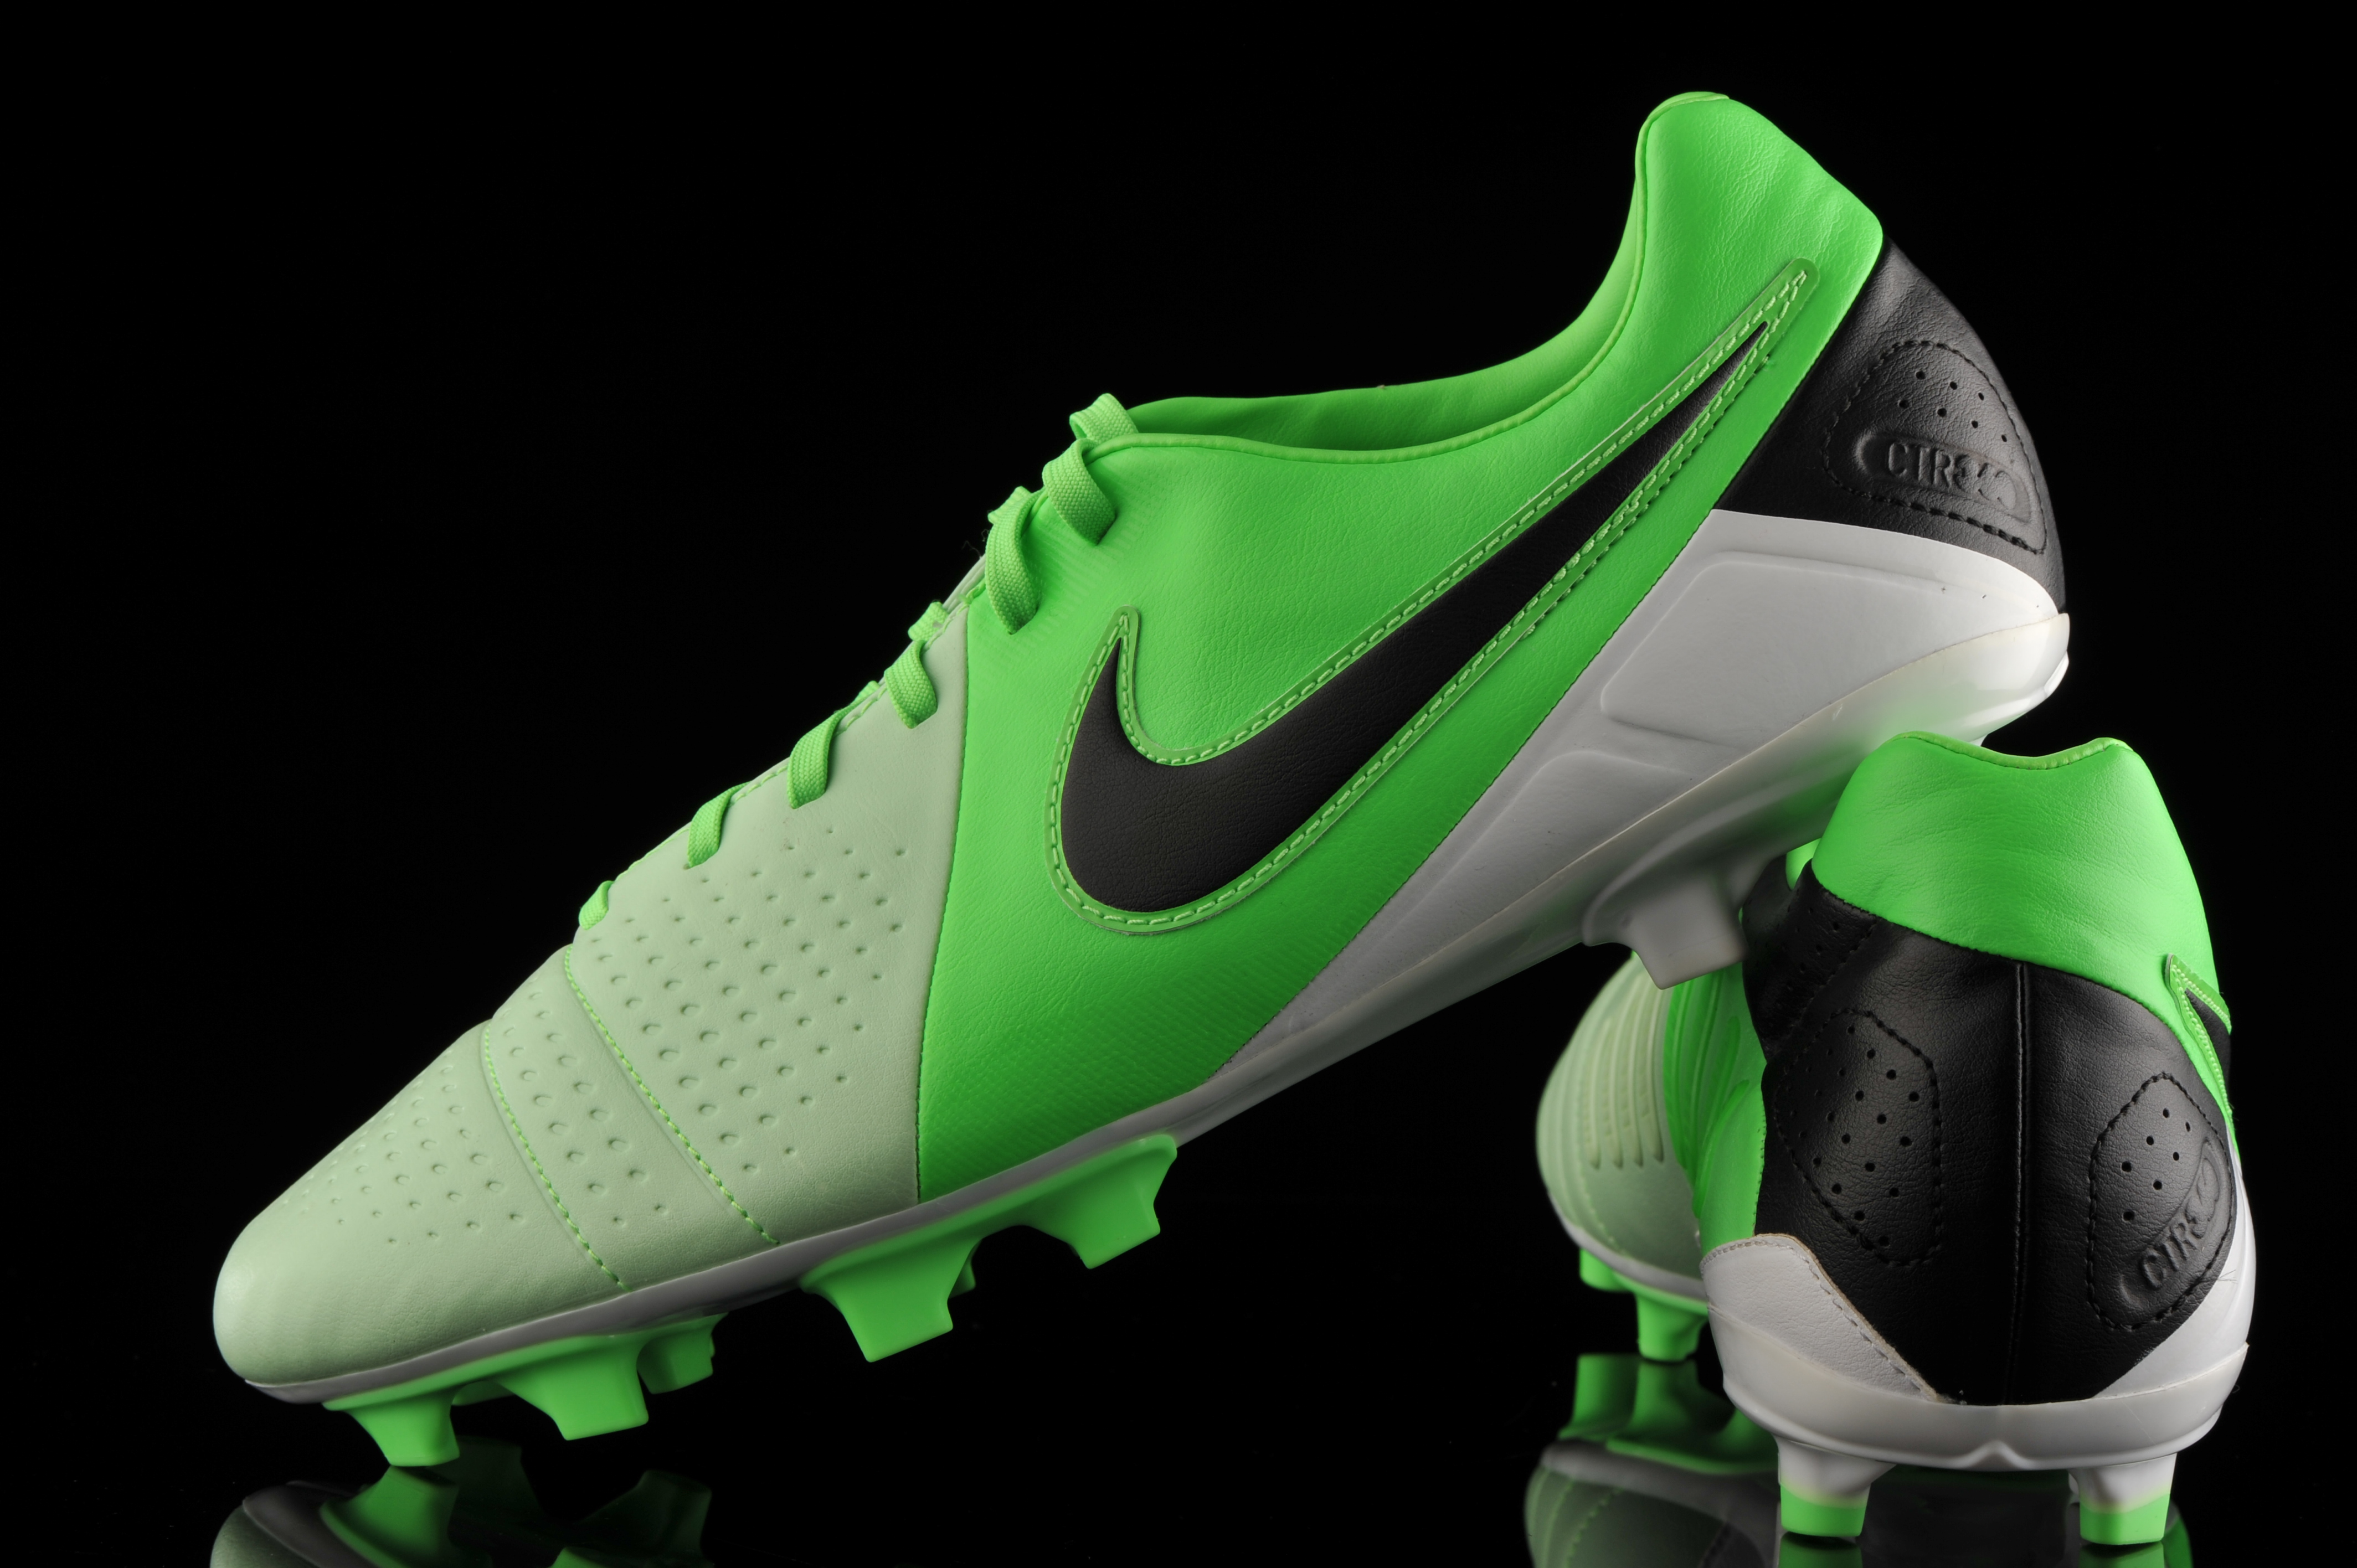 Nike CTR360 Libretto III Football Boots